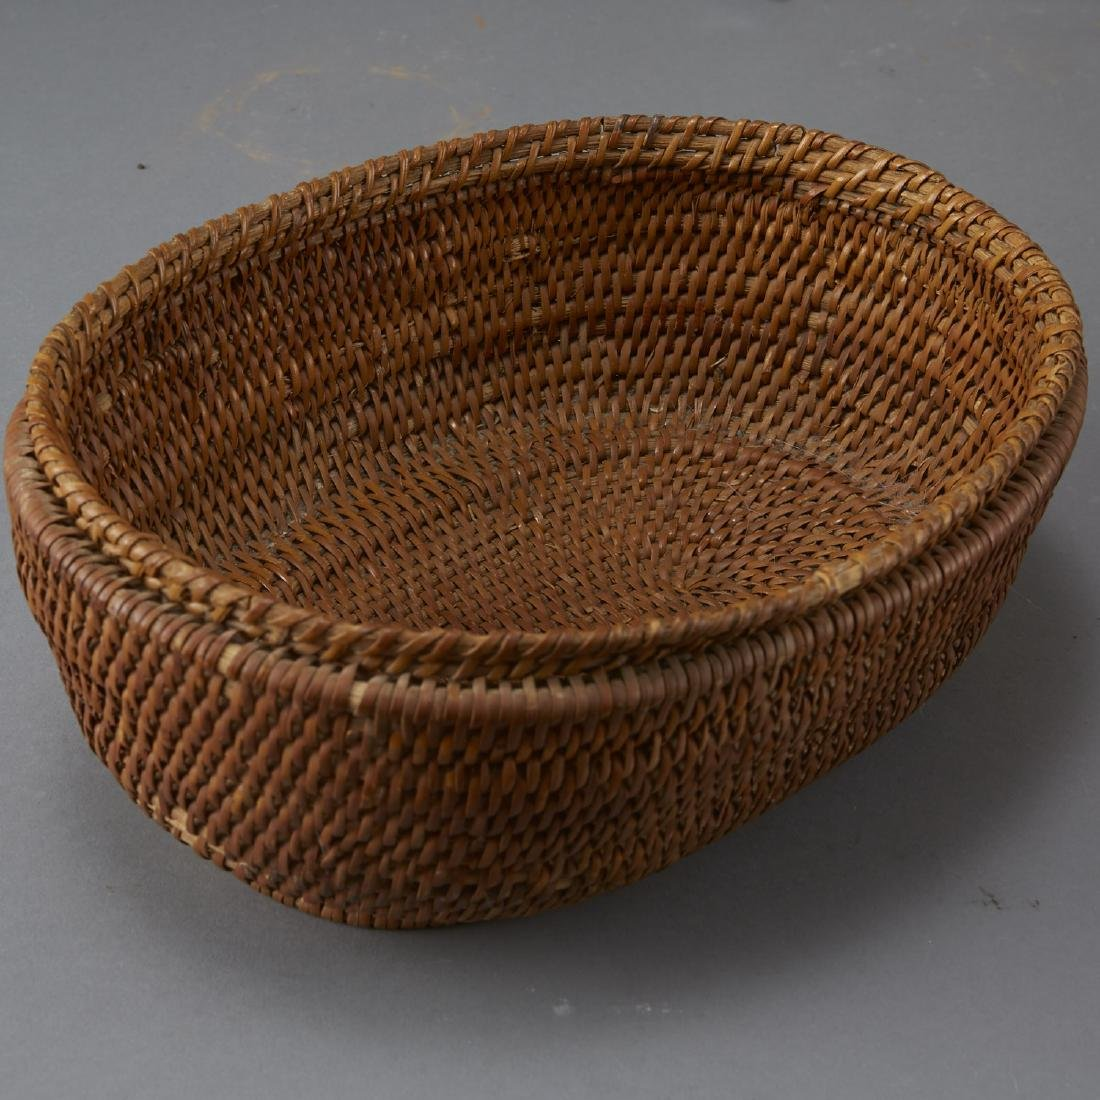 Group of 14 Native American Baskets - 8